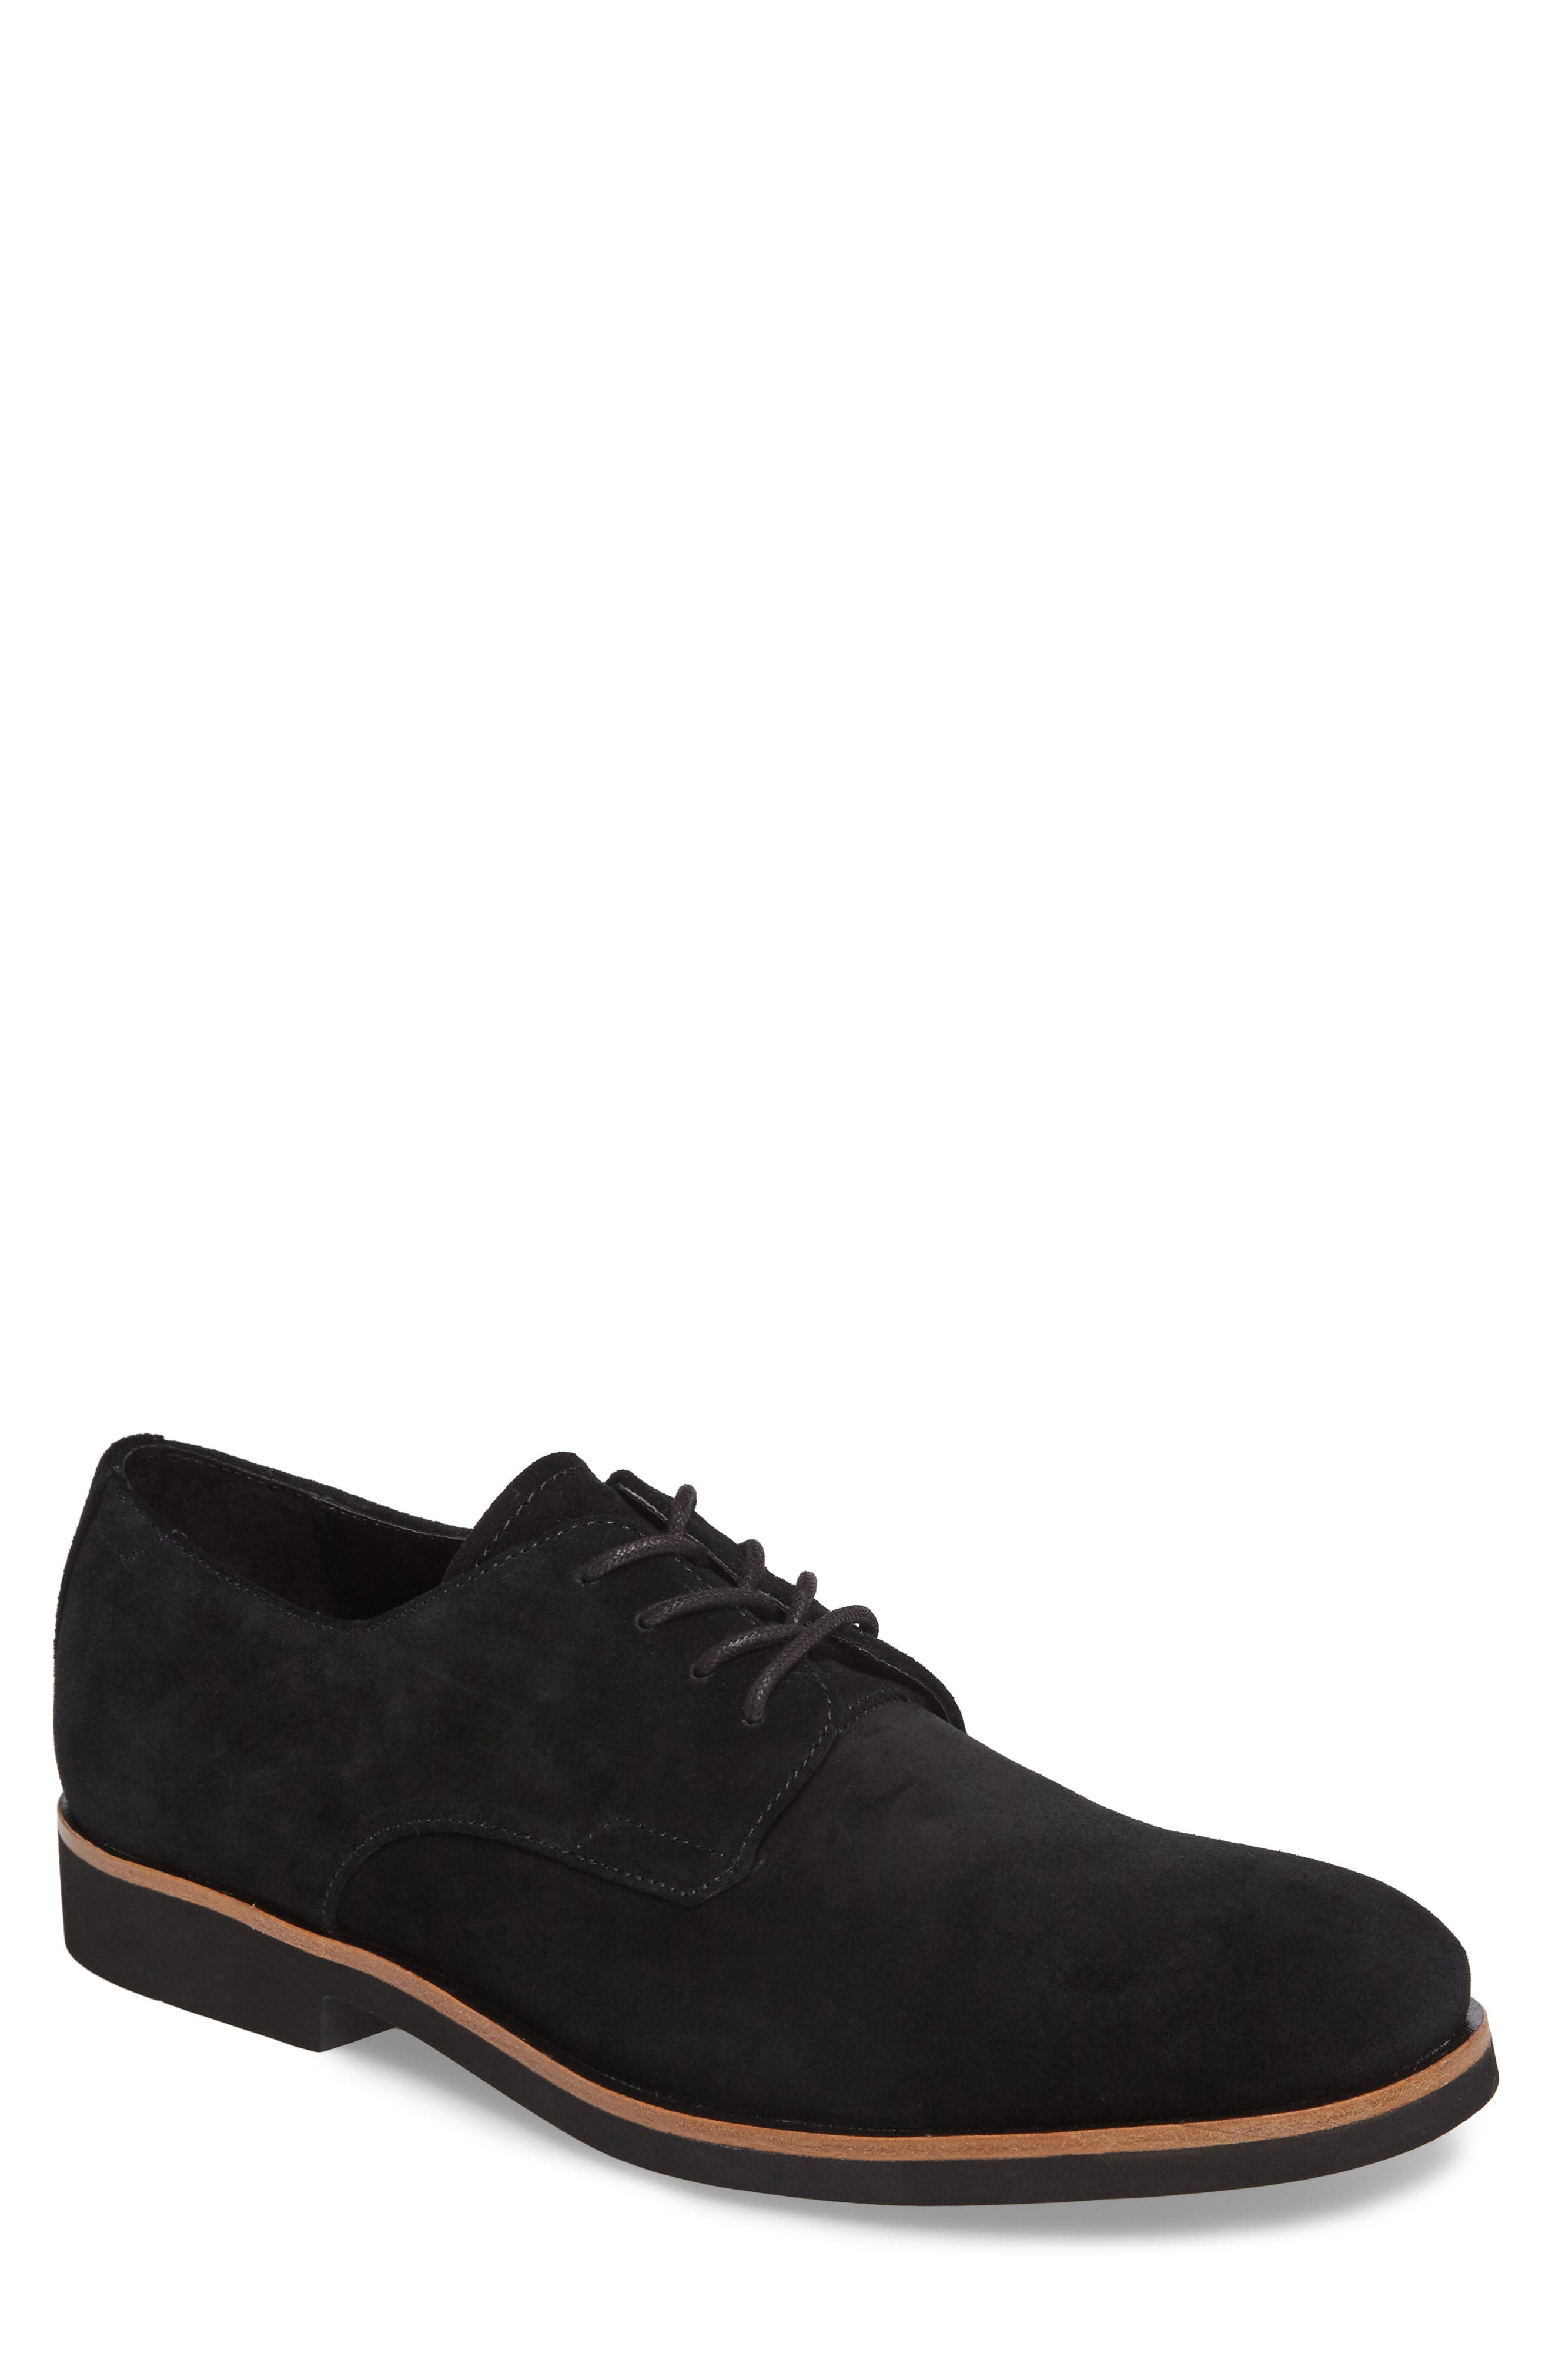 Faustino Plain Toe Derby,                         Main,                         color, Black Suede